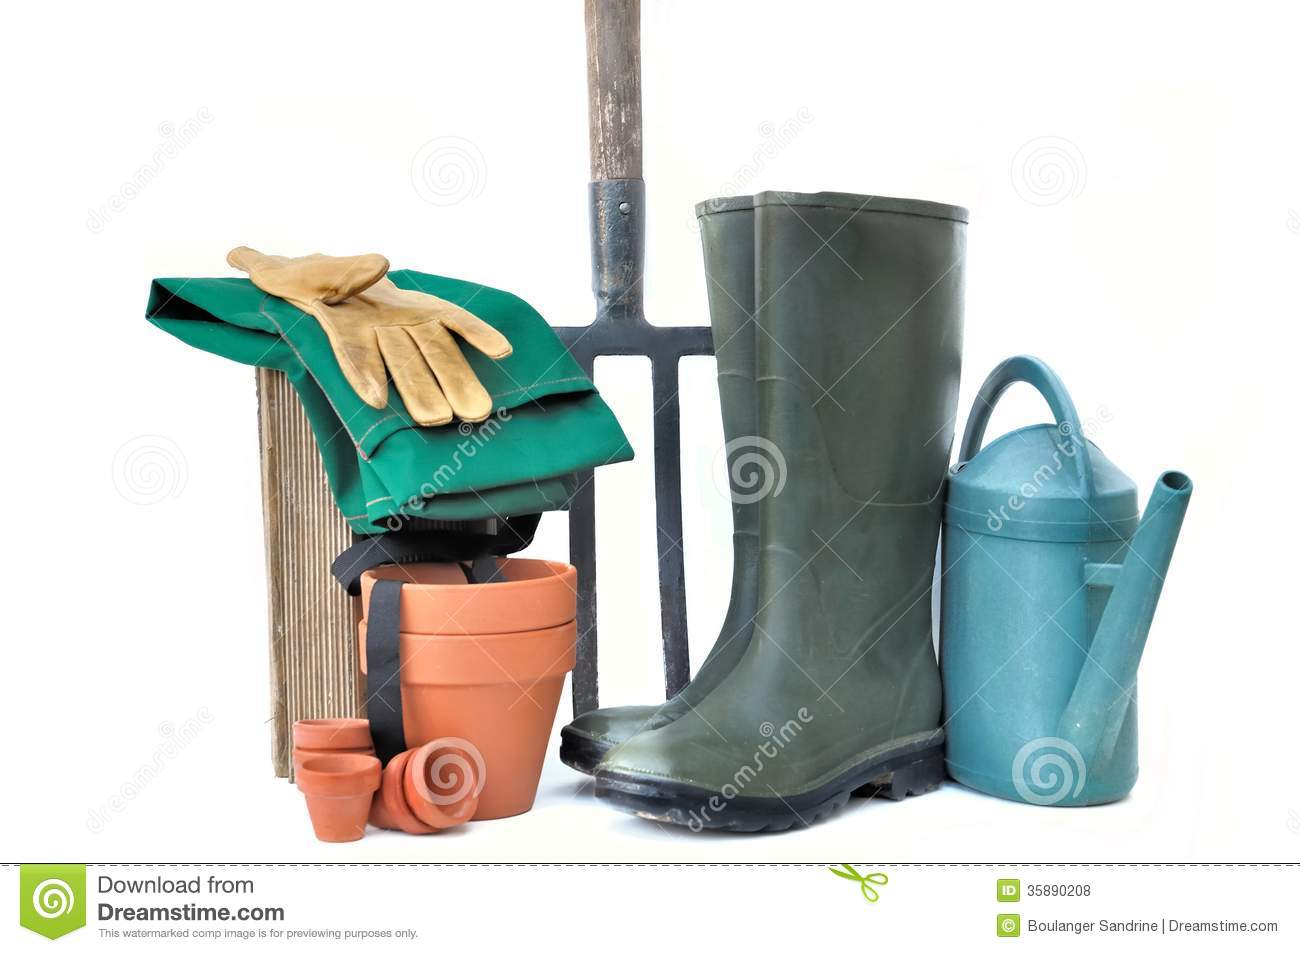 Gardeners supply company garden supplies and gardening for Gardeners supply company